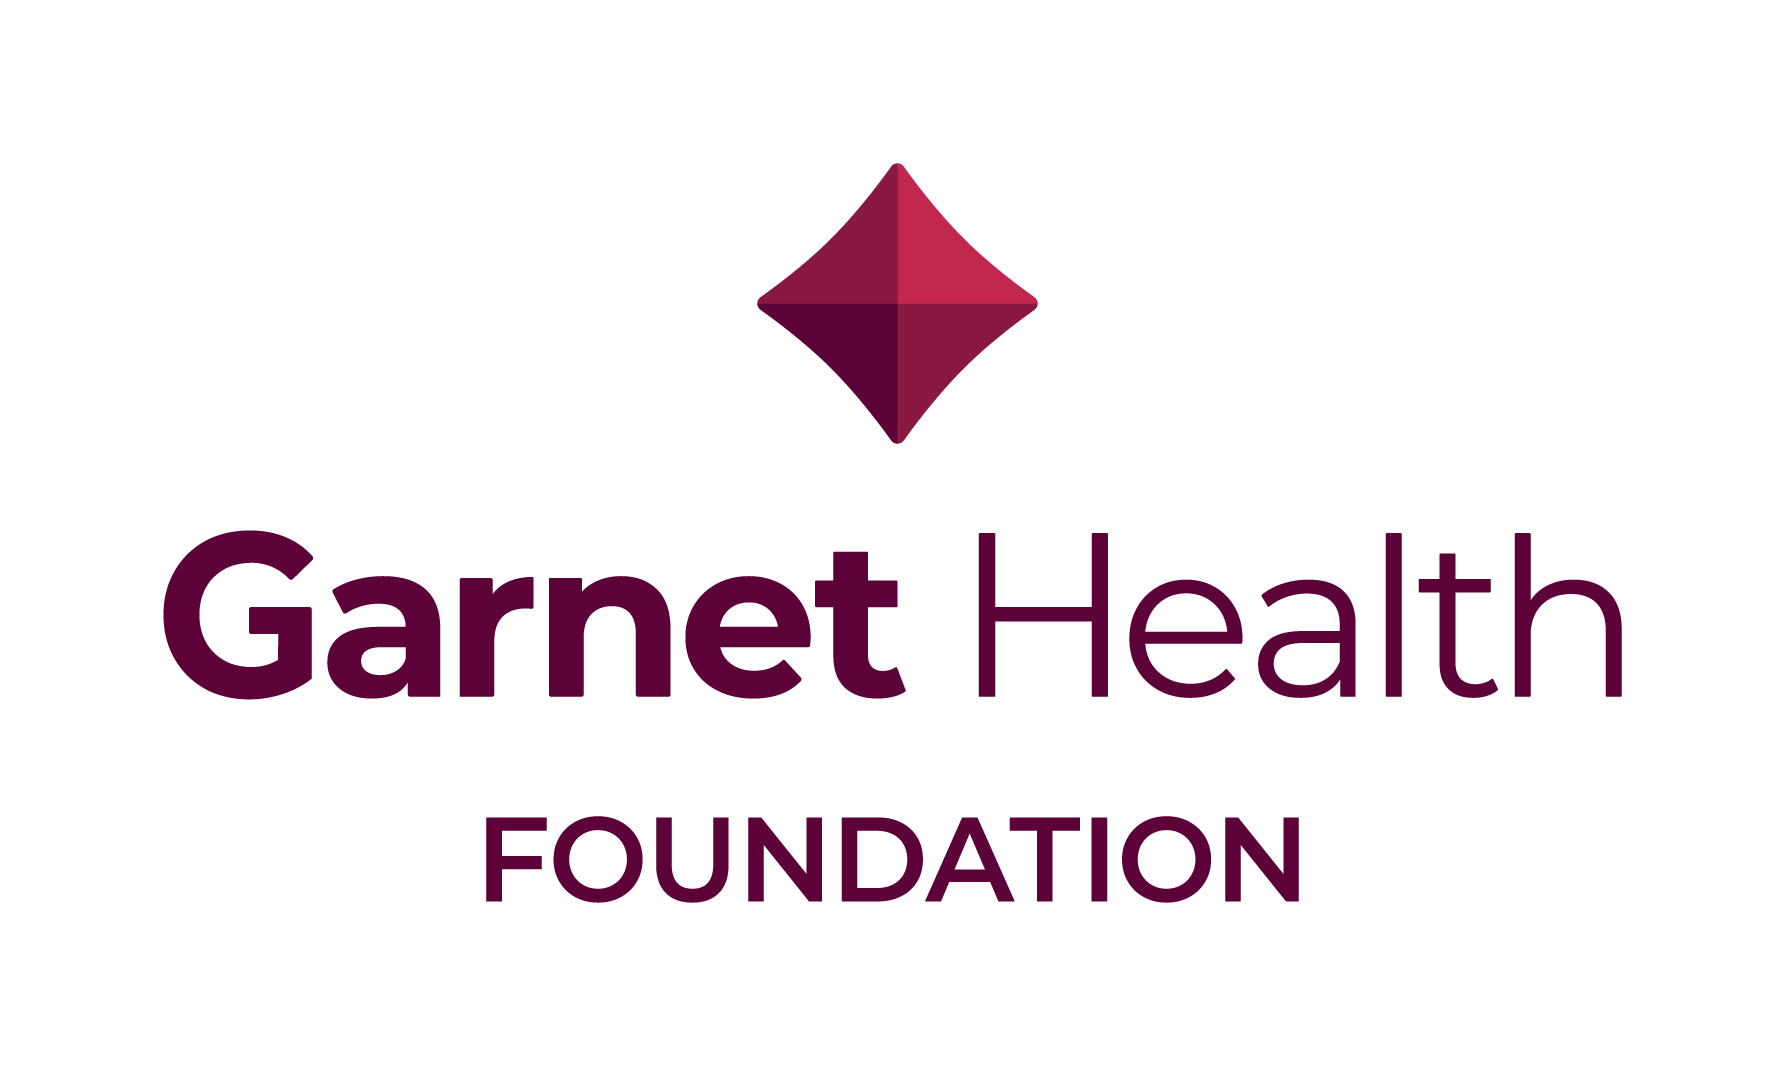 Garnet Health Foundation